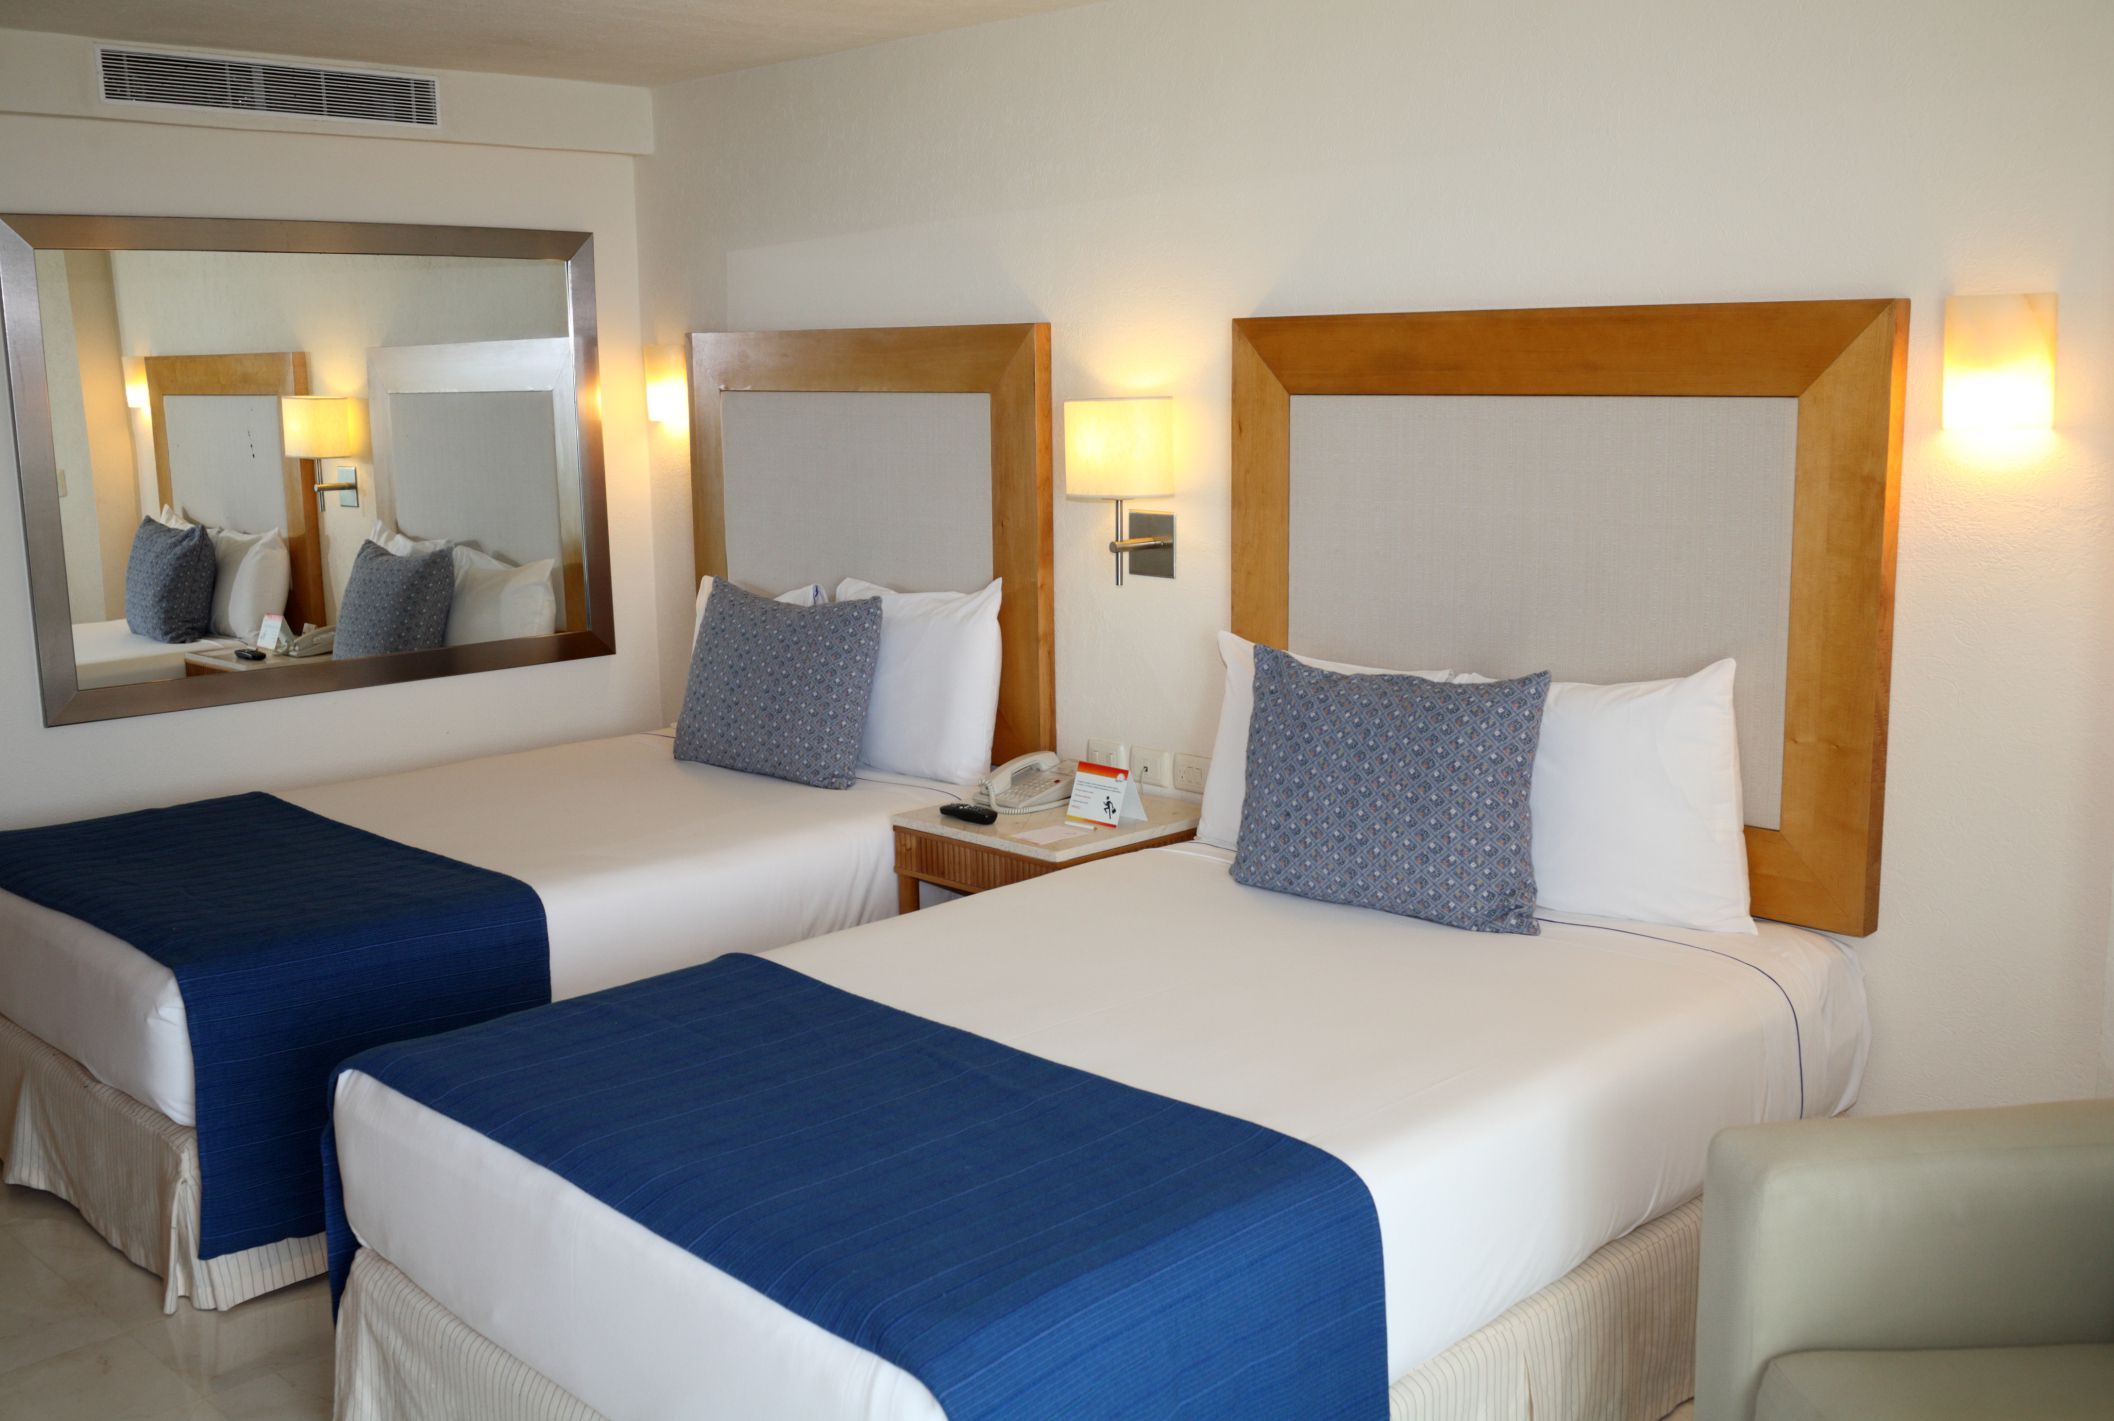 Twin Beds or Separate Bedrooms for Married Couples